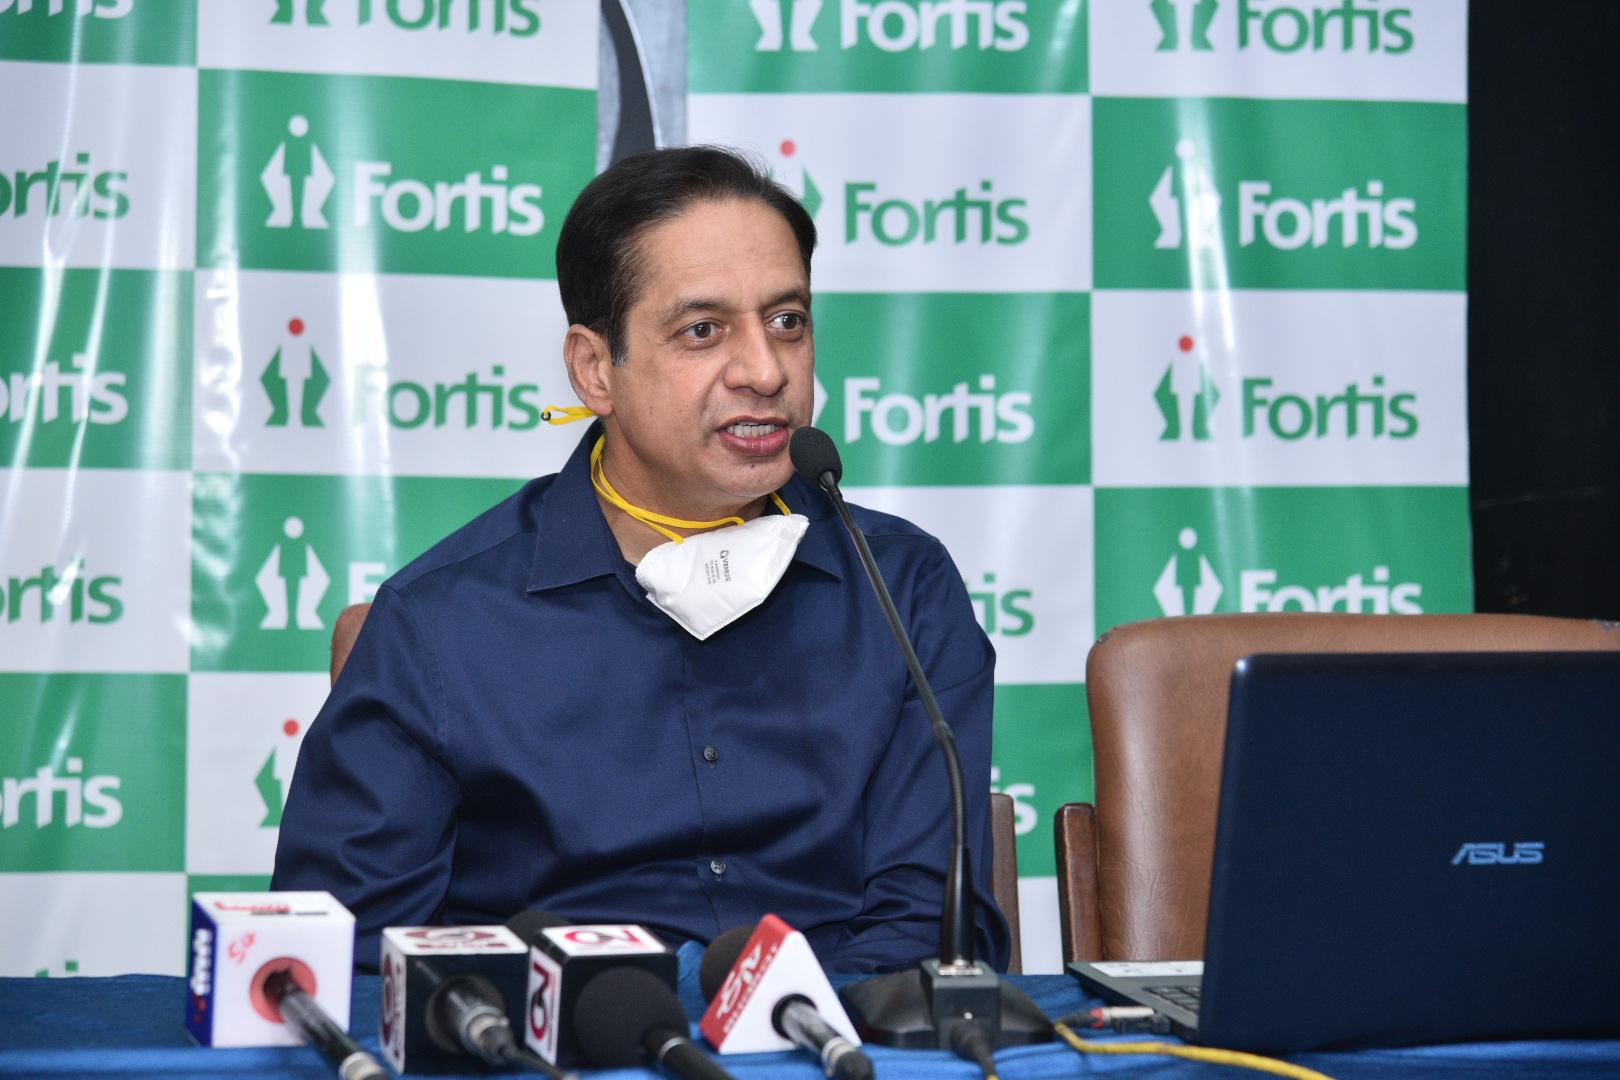 Fortis Non-surgical valve implant clinic